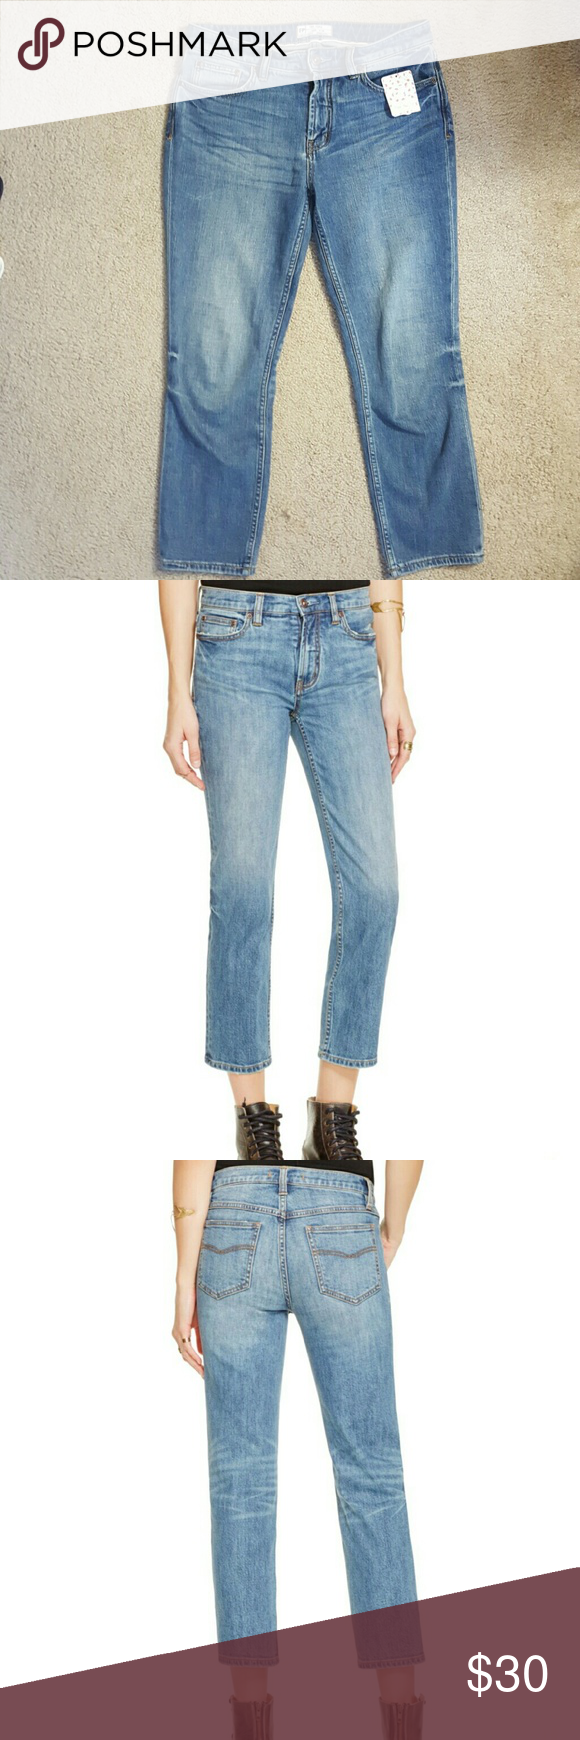 Free people jeans in harbor Brand new. Super soft! Free People Jeans Ankle & Cropped